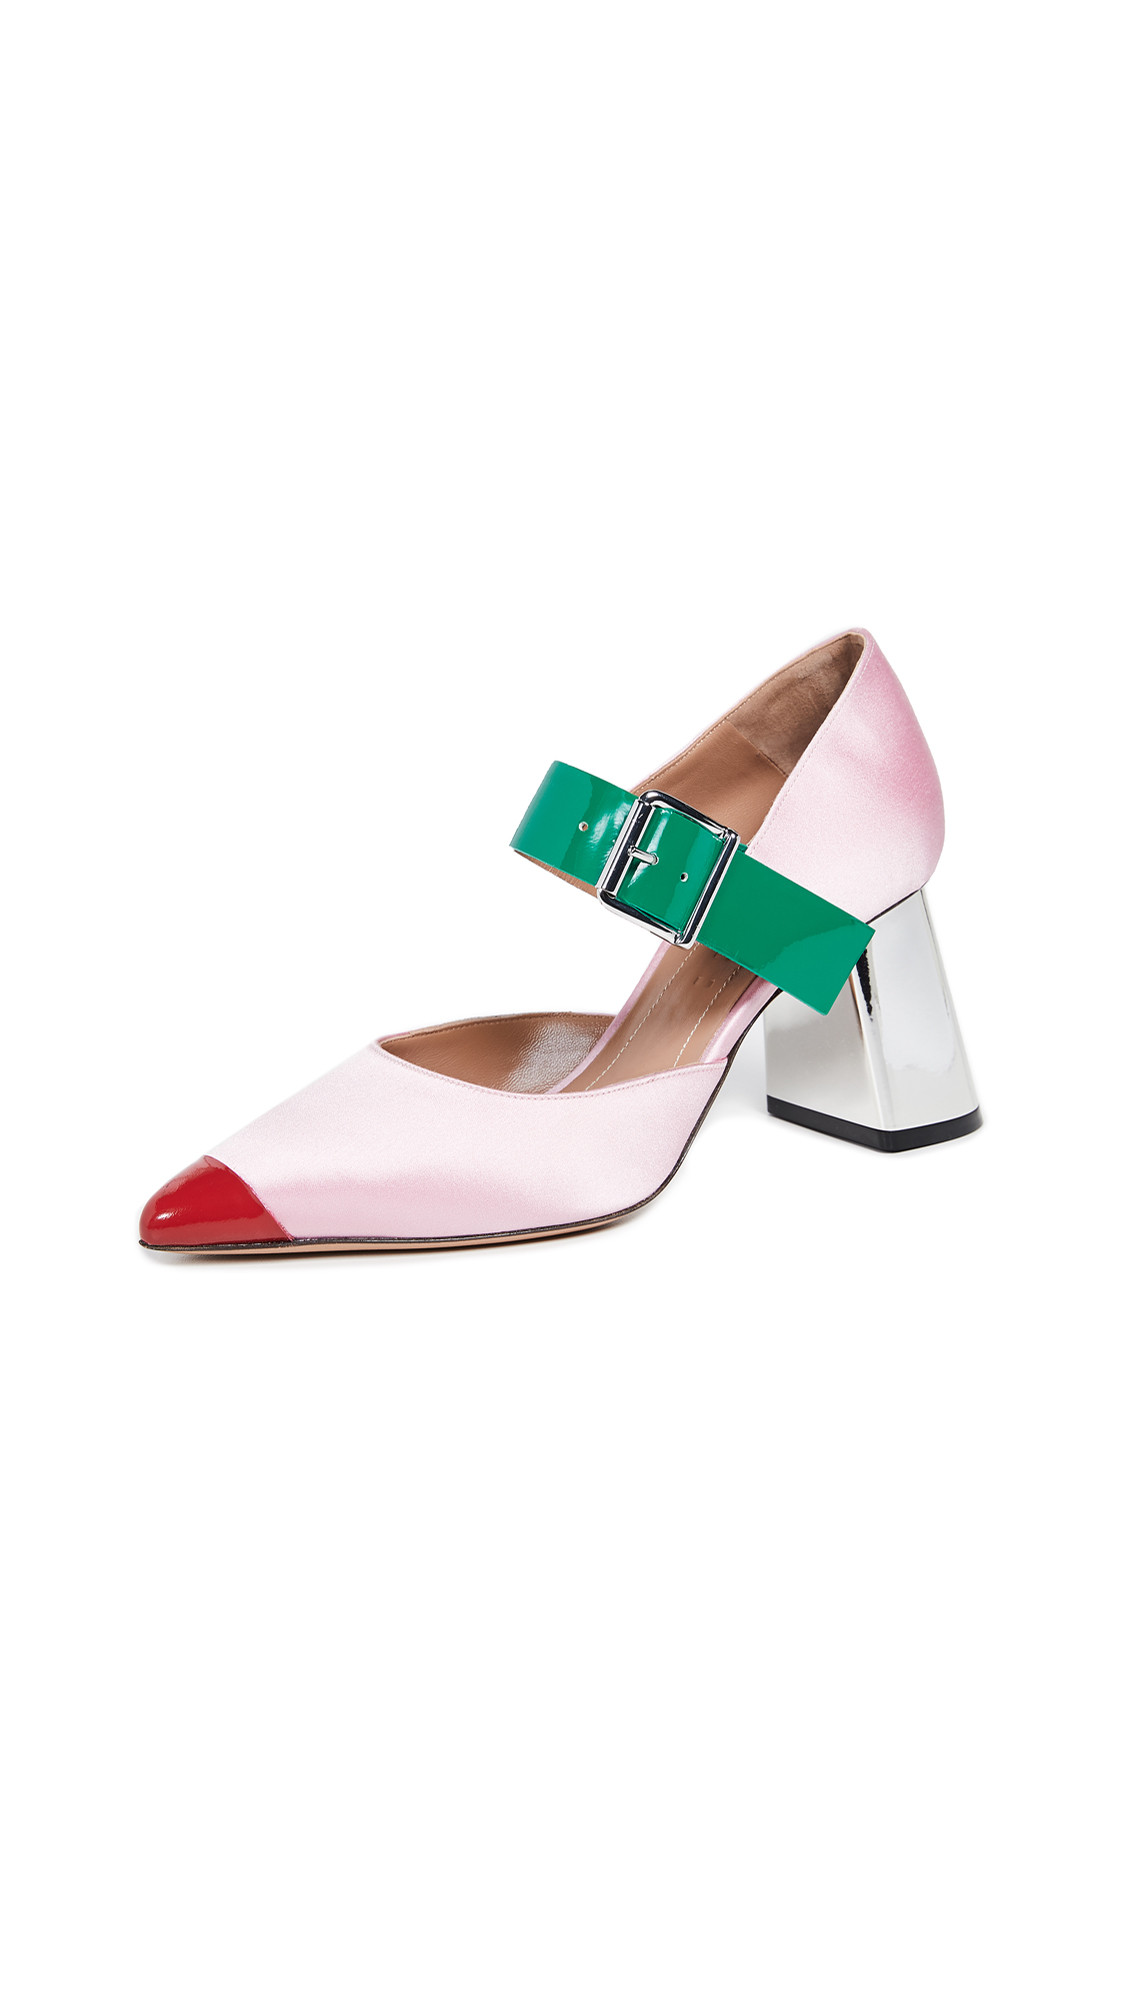 Marni Mary Jane Pumps - Light Pink/Forest Green